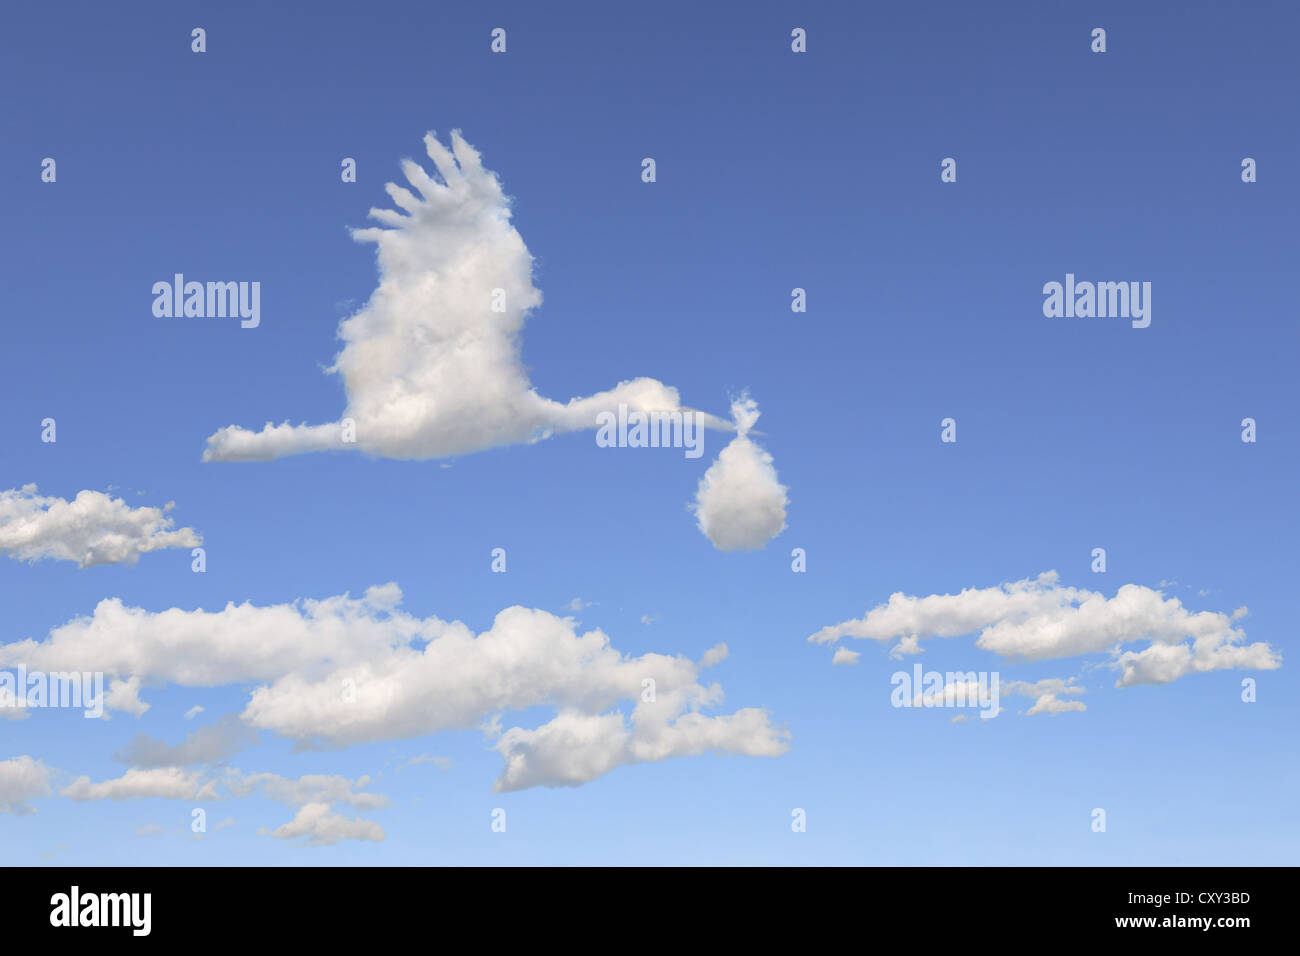 Cloud formations in the shape of a stork holding diapers, illustration - Stock Image